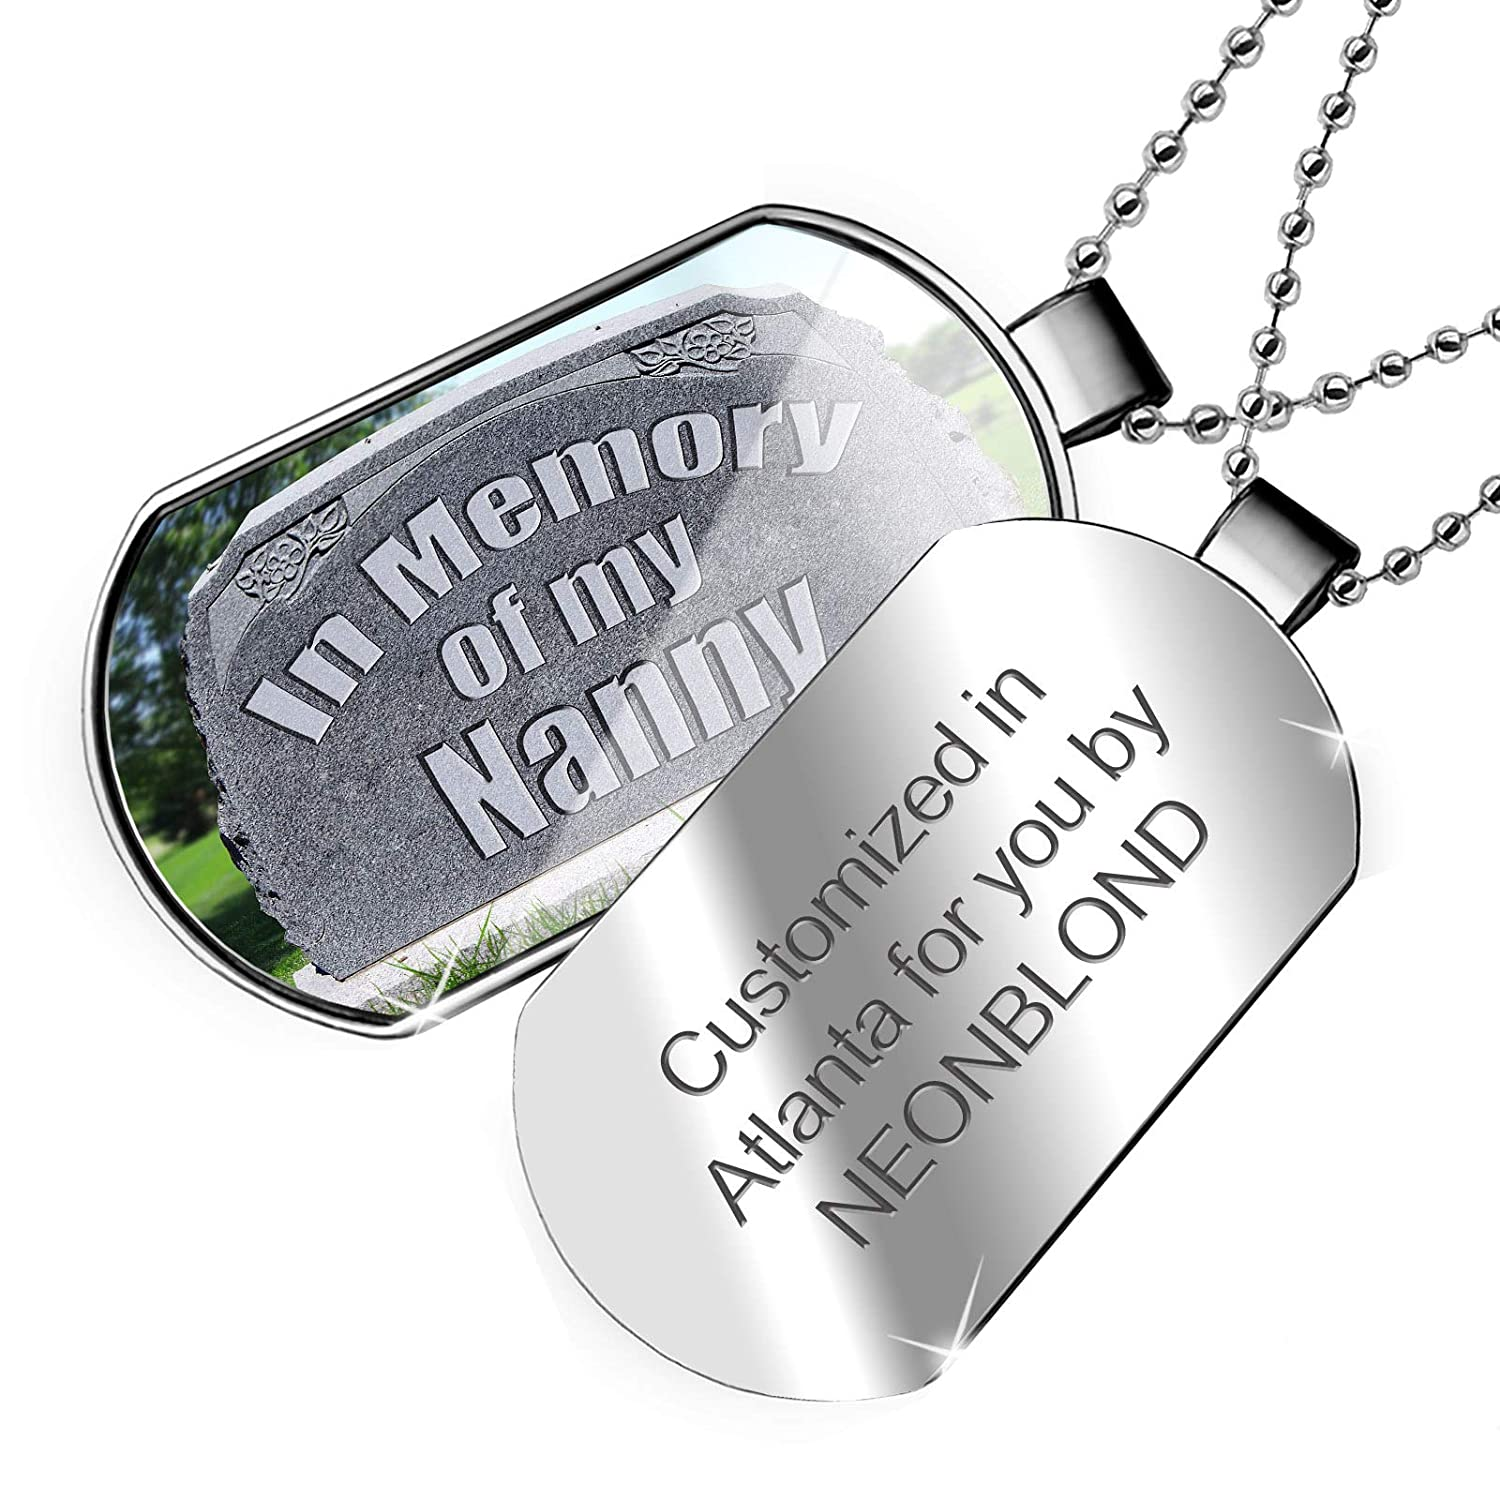 R.I.P Dogtag Necklace NEONBLOND Personalized Name Engraved in Memory of My Nanny